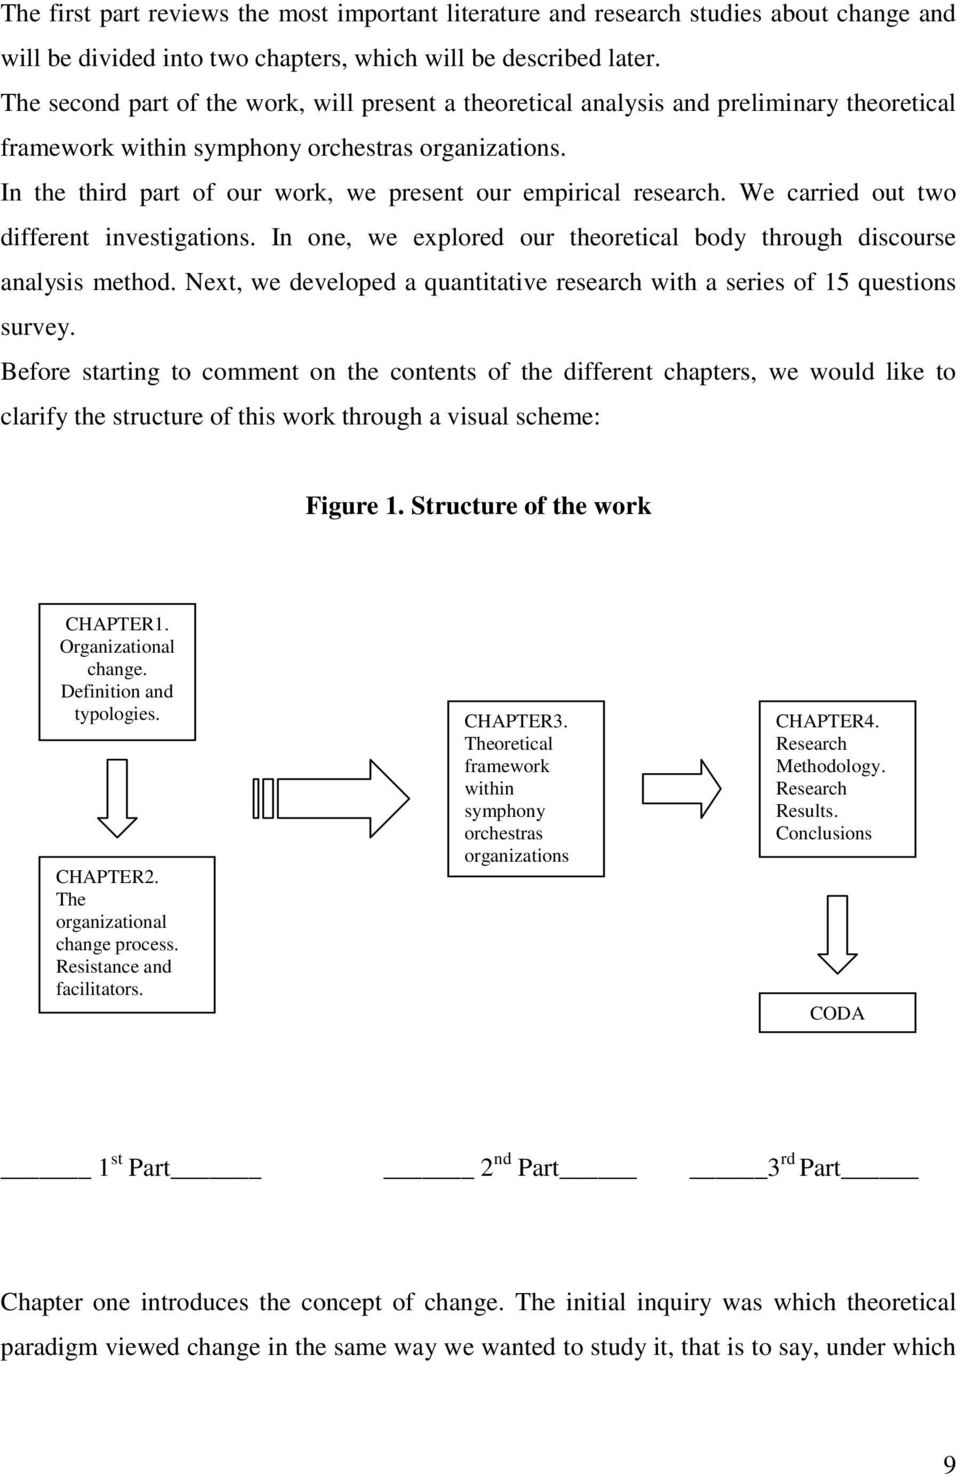 In the third part of our work, we present our empirical research. We carried out two different investigations. In one, we explored our theoretical body through discourse analysis method.